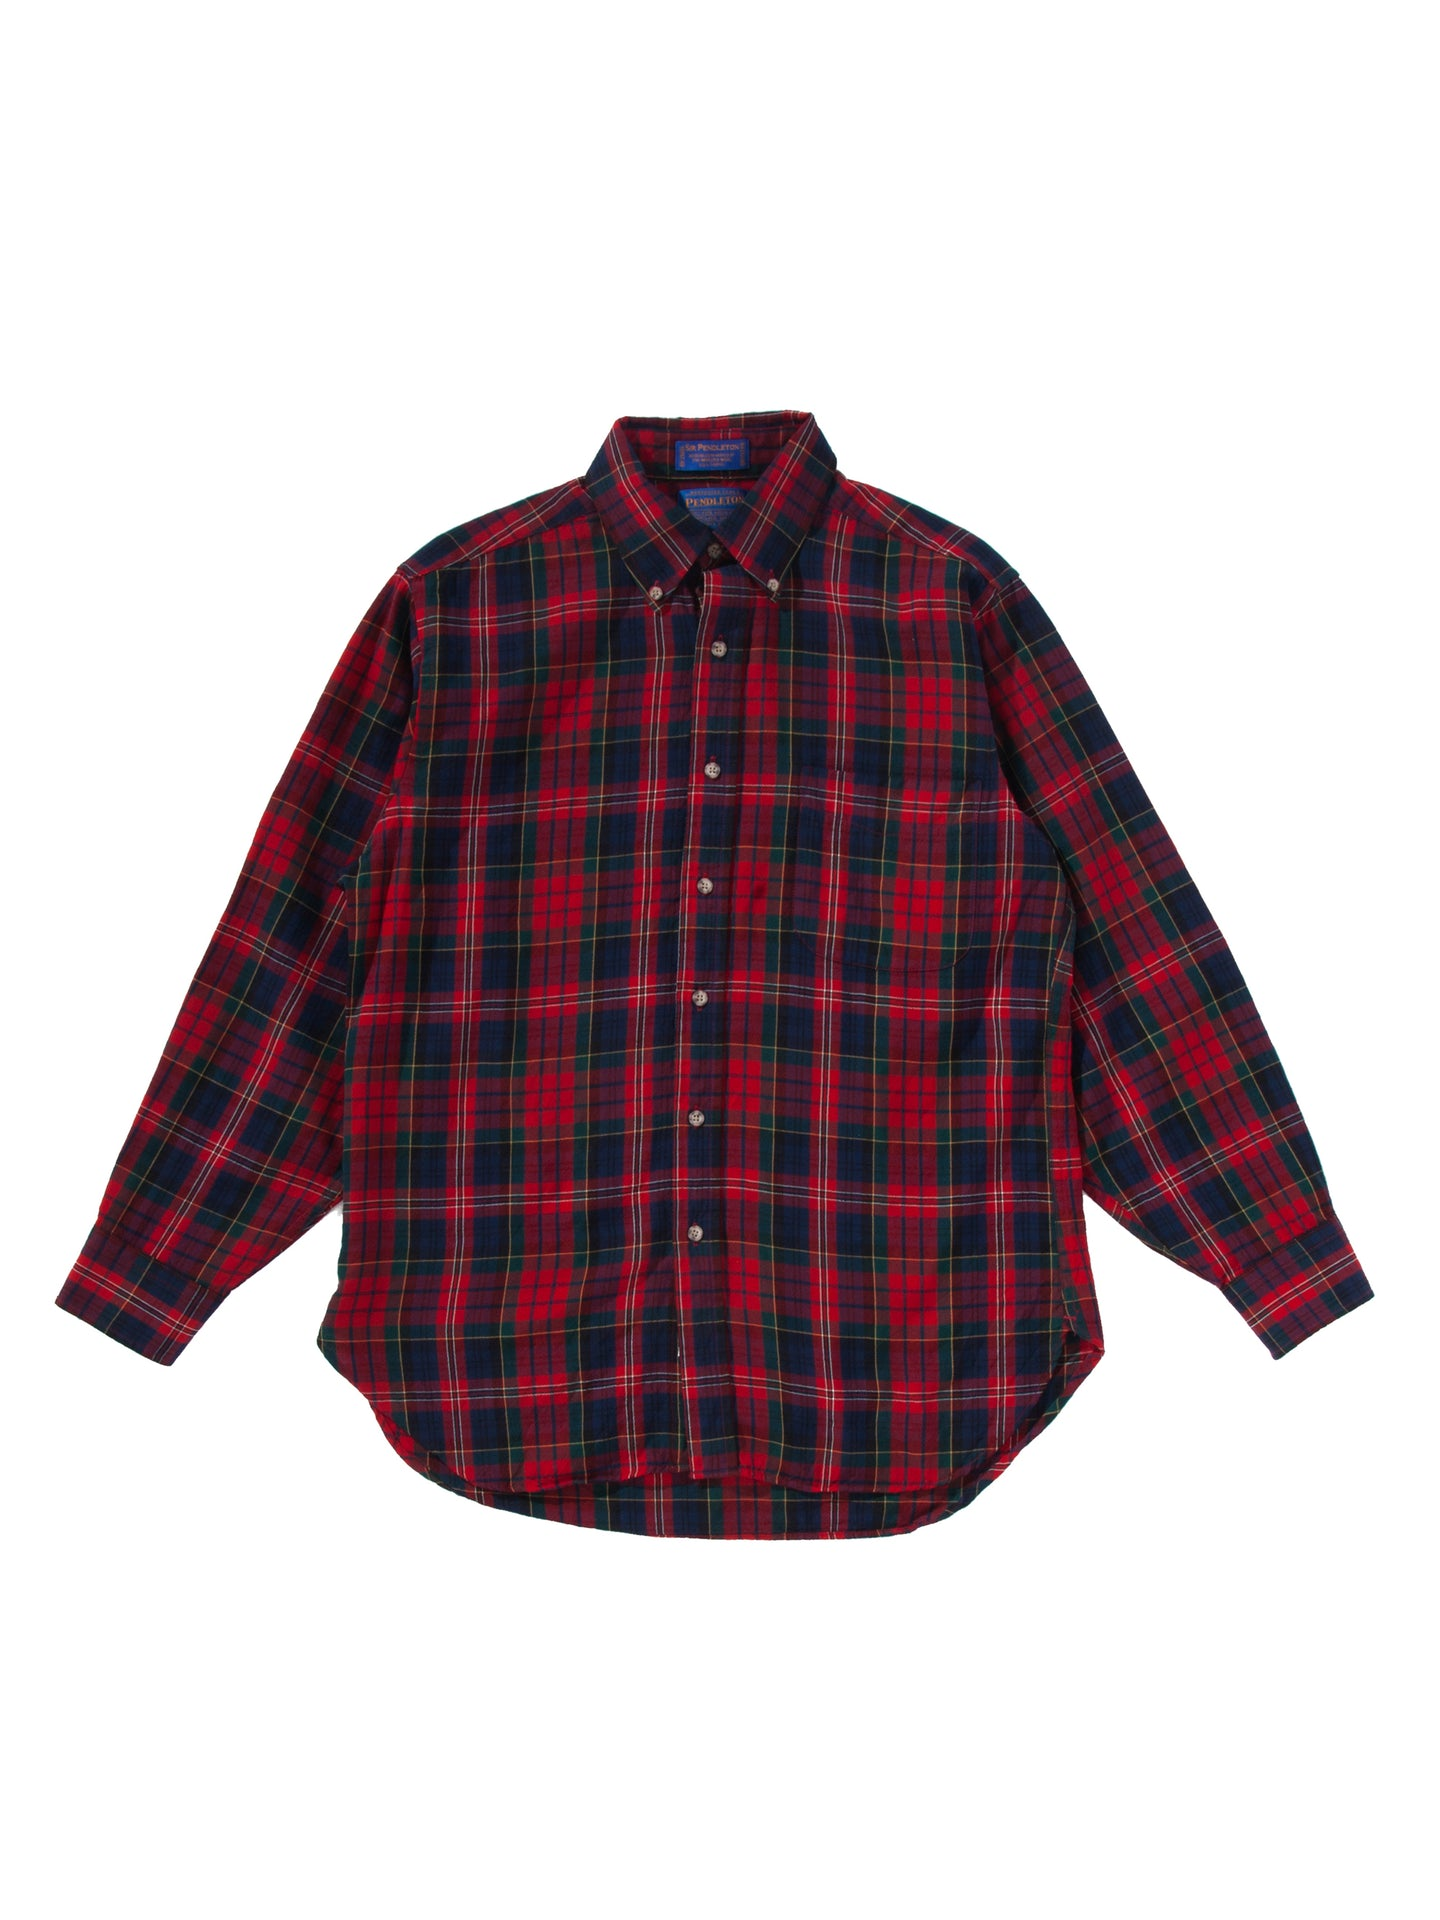 SQUARE DARK RED BUTTON DOWN SHIRT